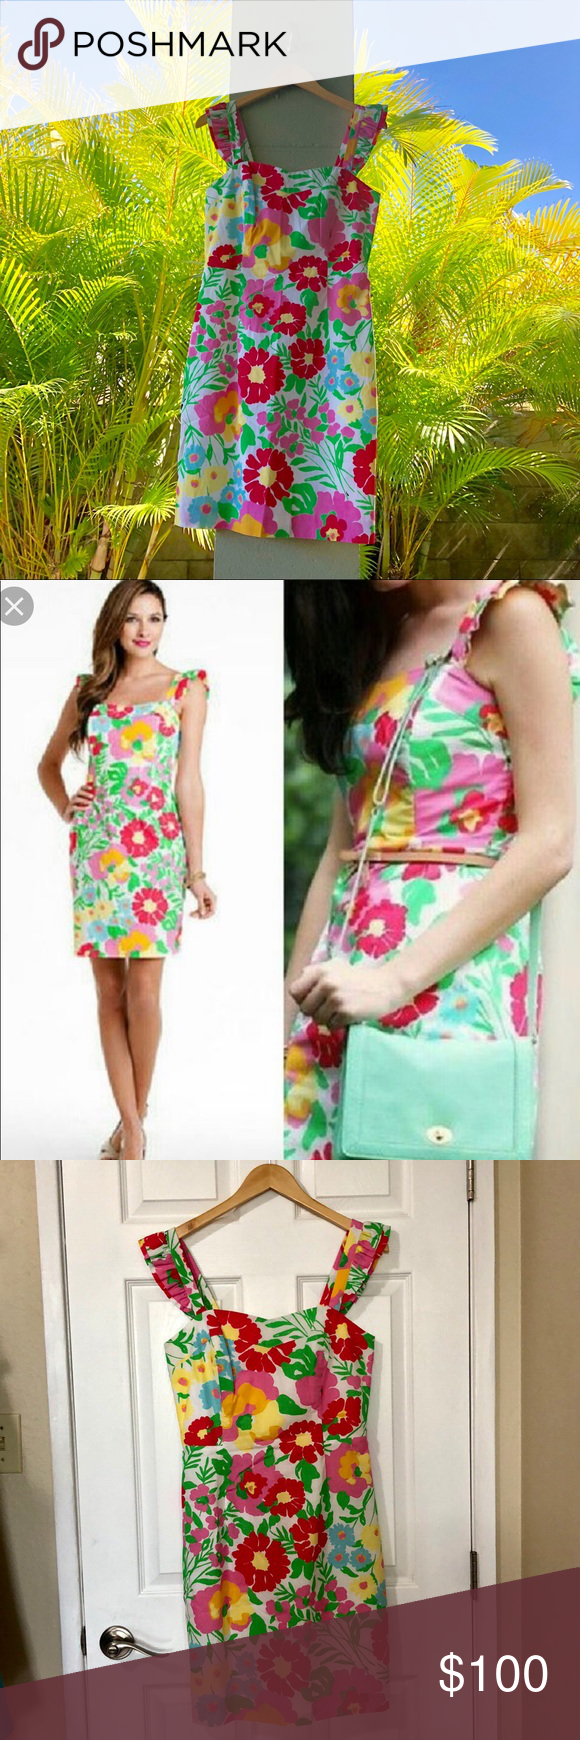 13b690173524a9 GUC Lilly Pulitzer Sarafina Dress Missing the eye catch for the hook  otherwise this dress is